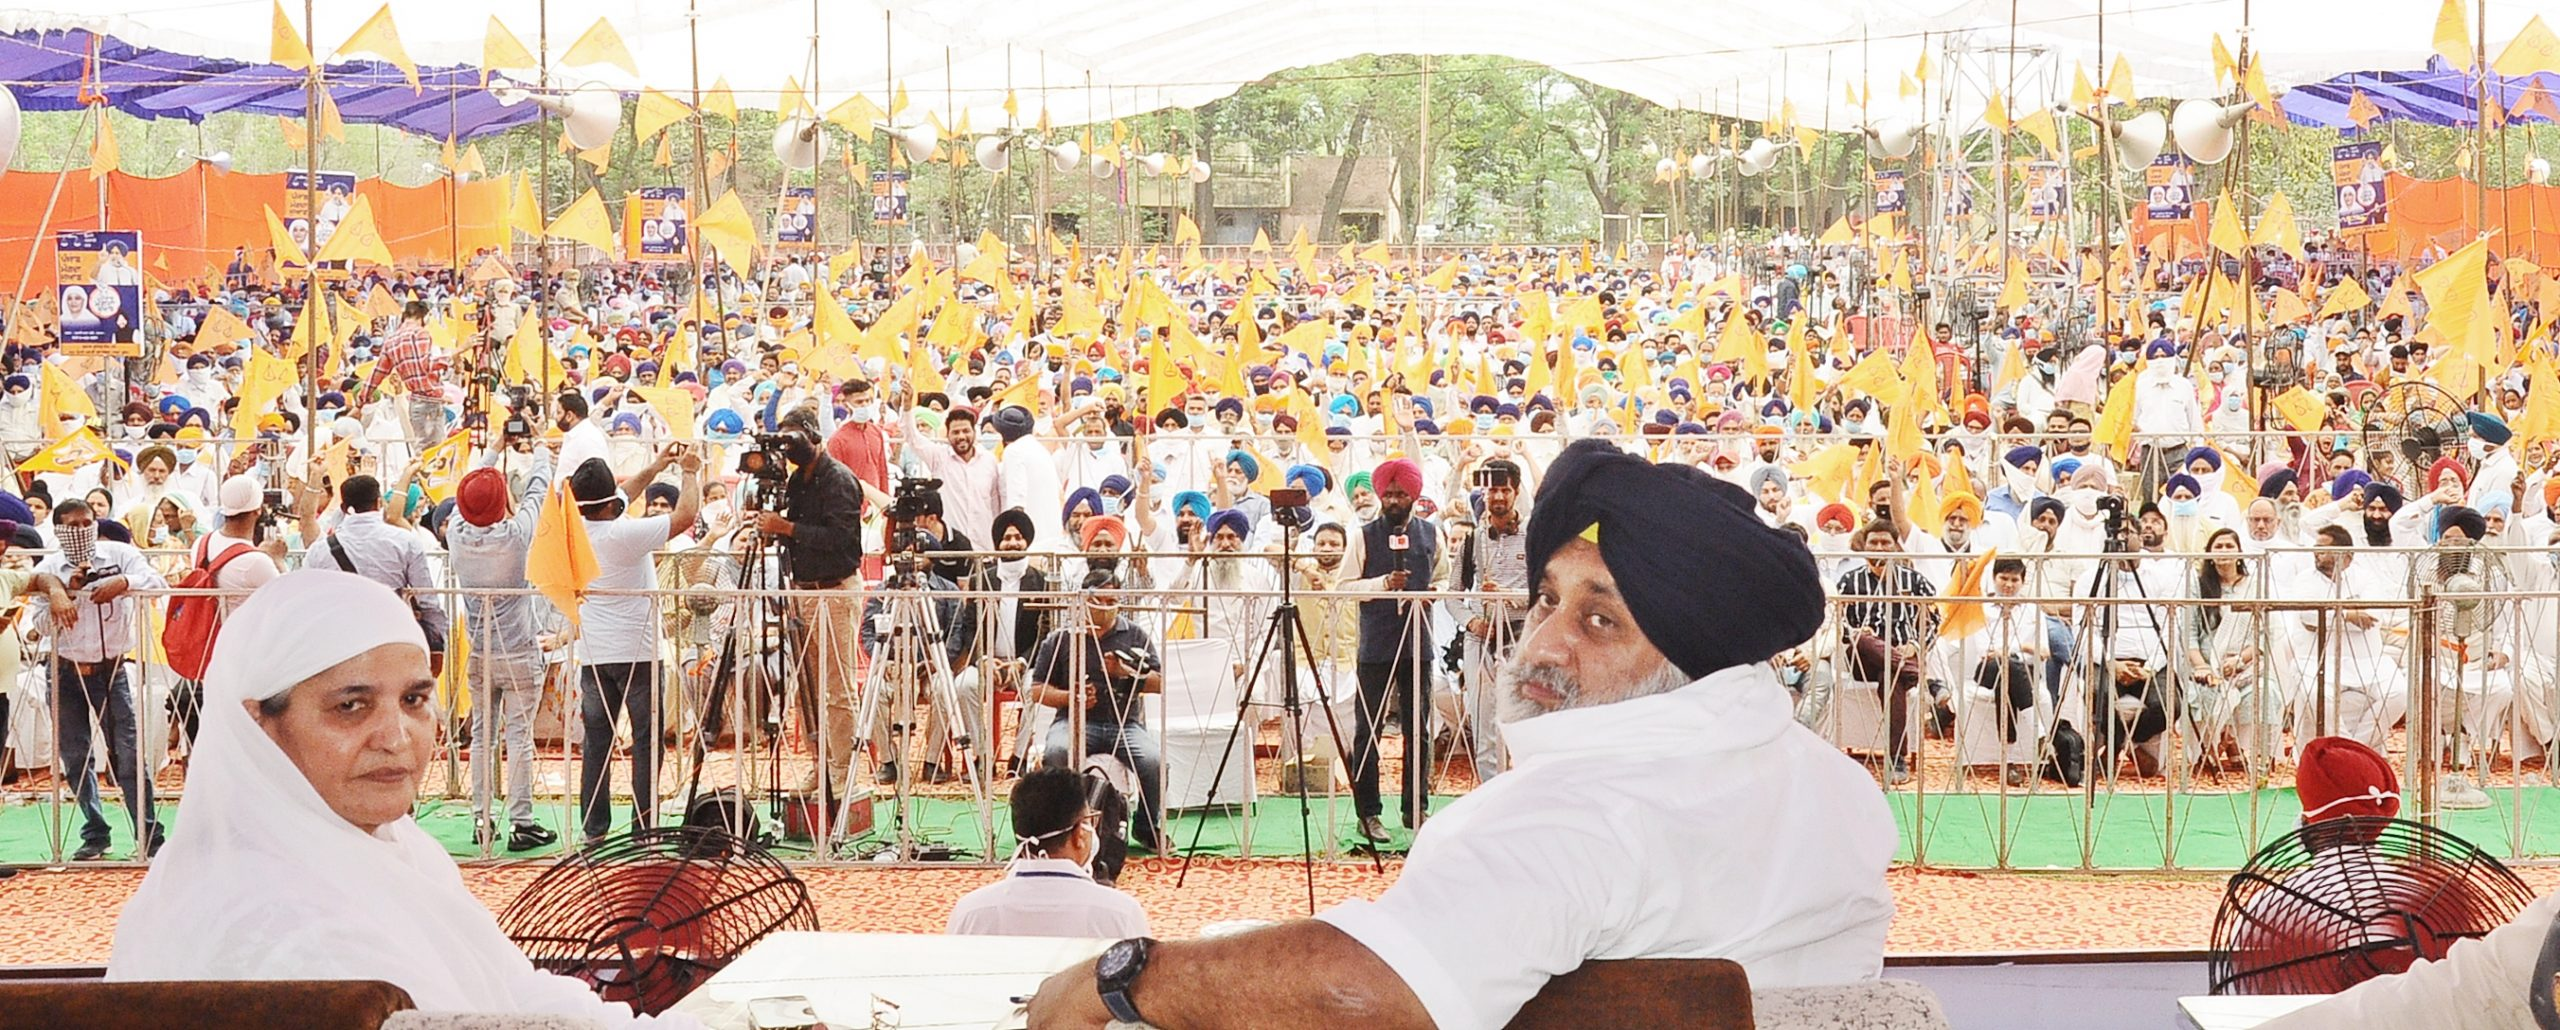 Tell one thing you have done for farmers, youth or weaker sections – Sukhbir Singh Badal asks CM